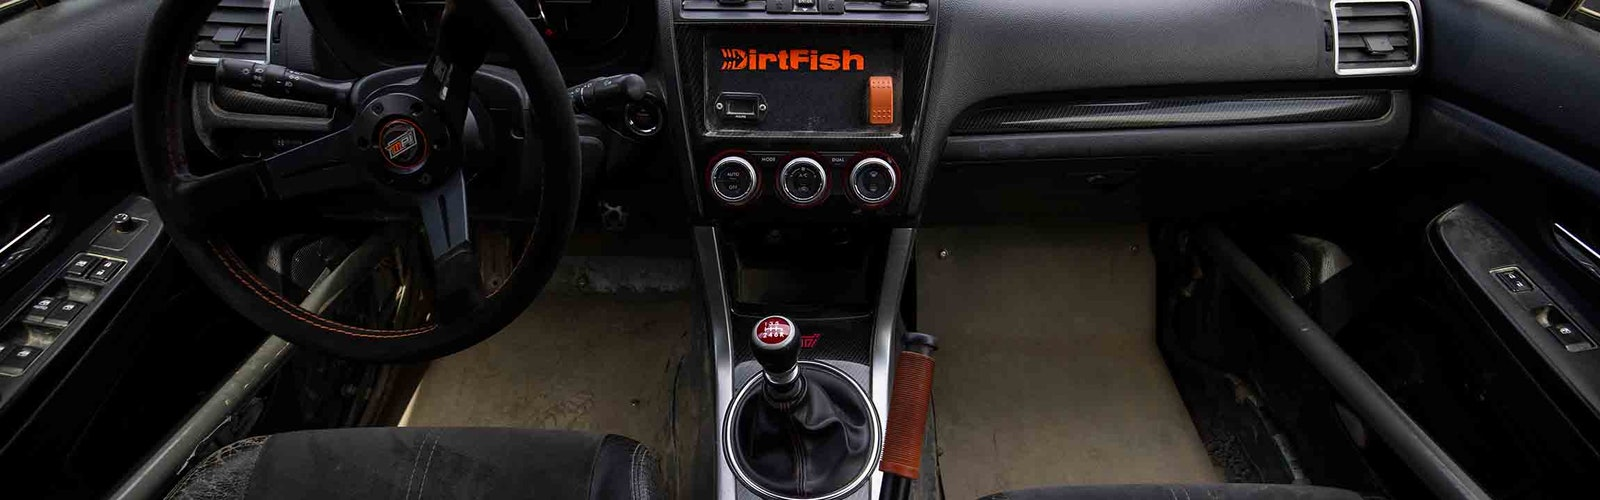 Manual-Transmission-How-to